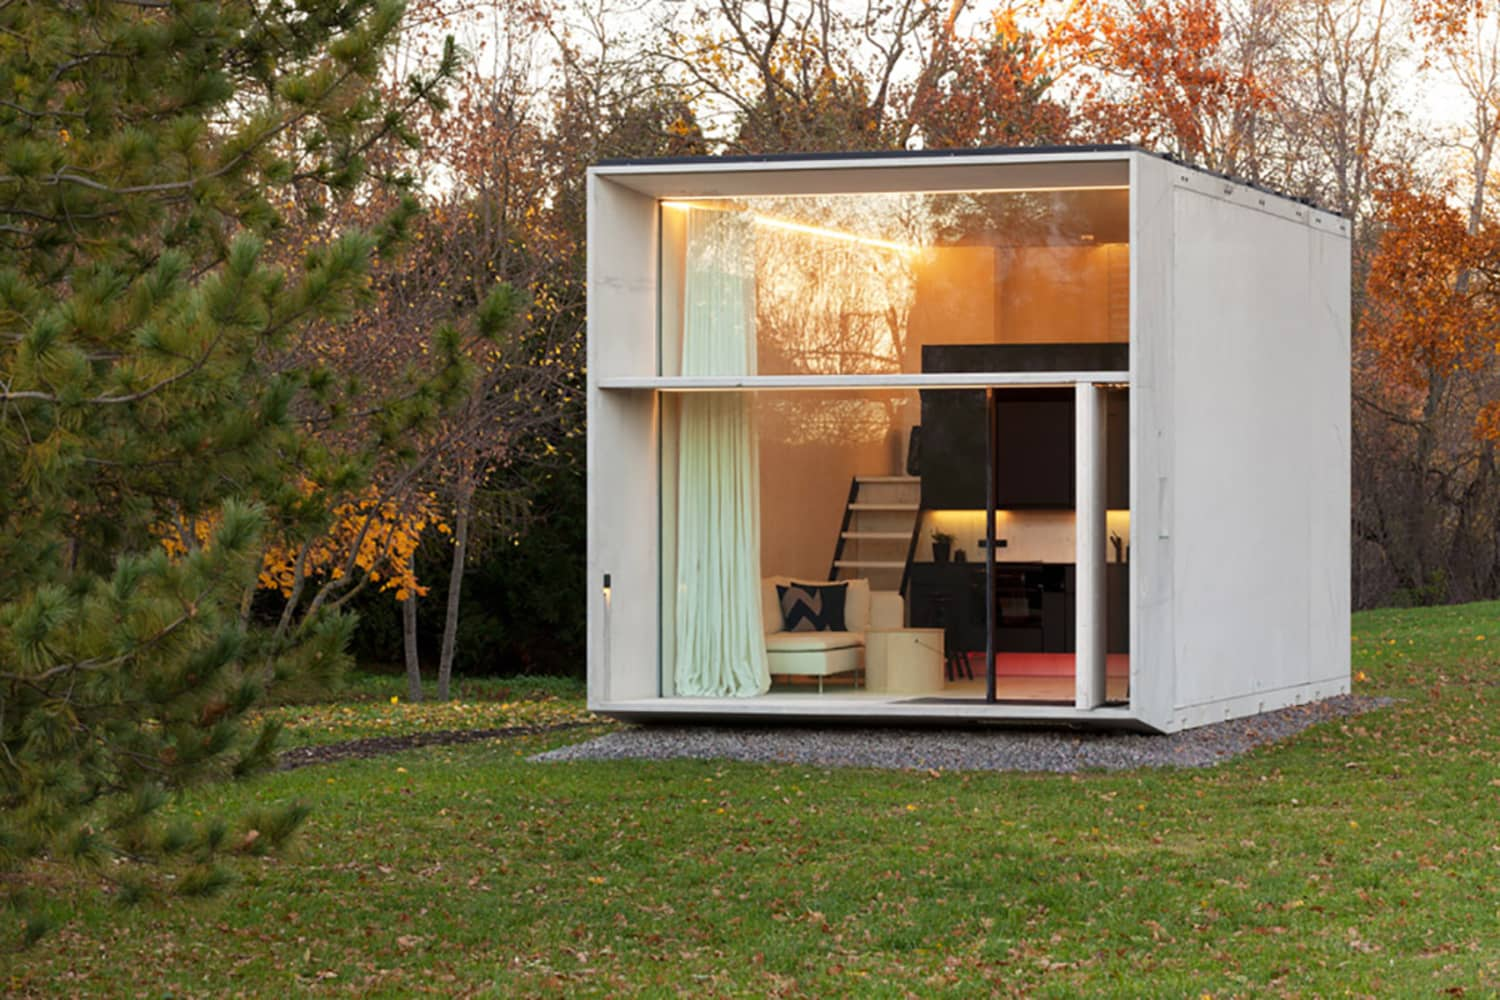 This House Can Be Built In a Day (& Just Might Solve the UK's Housing Problems)